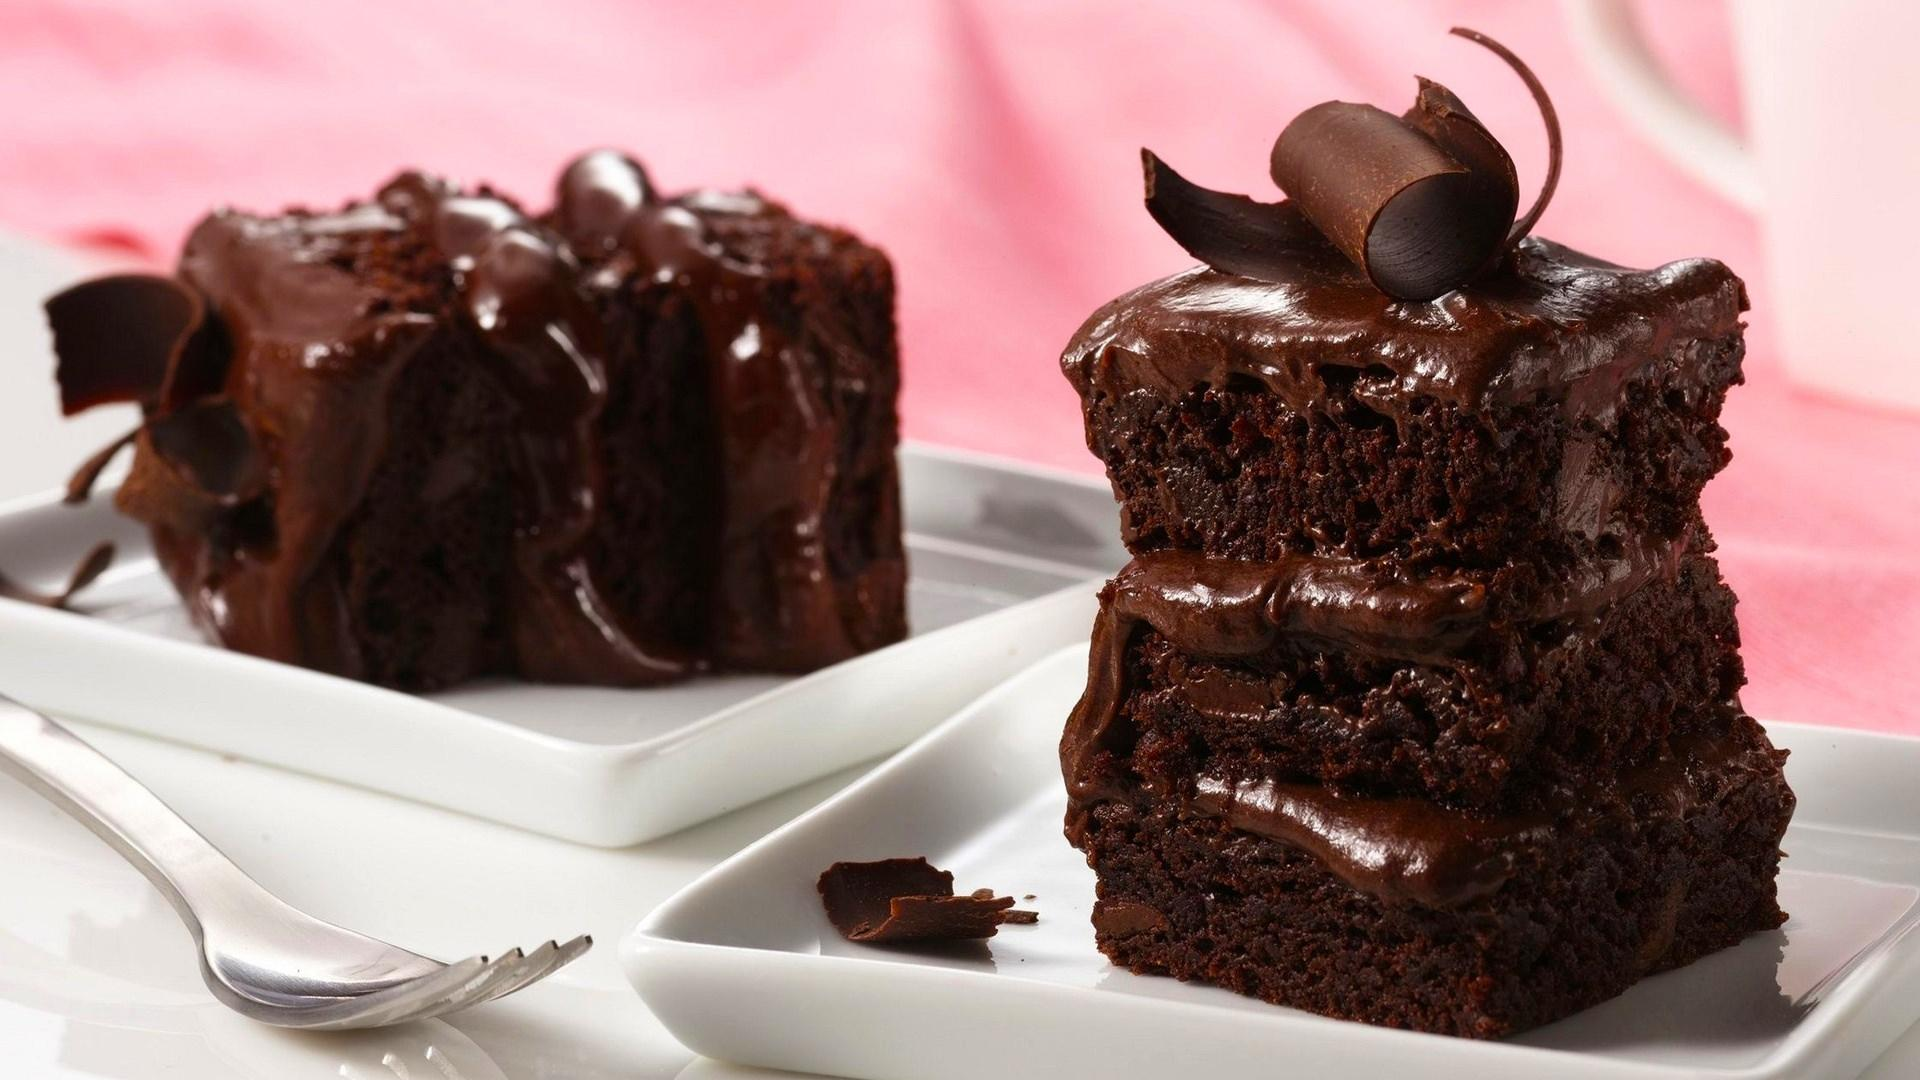 cute cake wallpapers for android - wallpaper cave